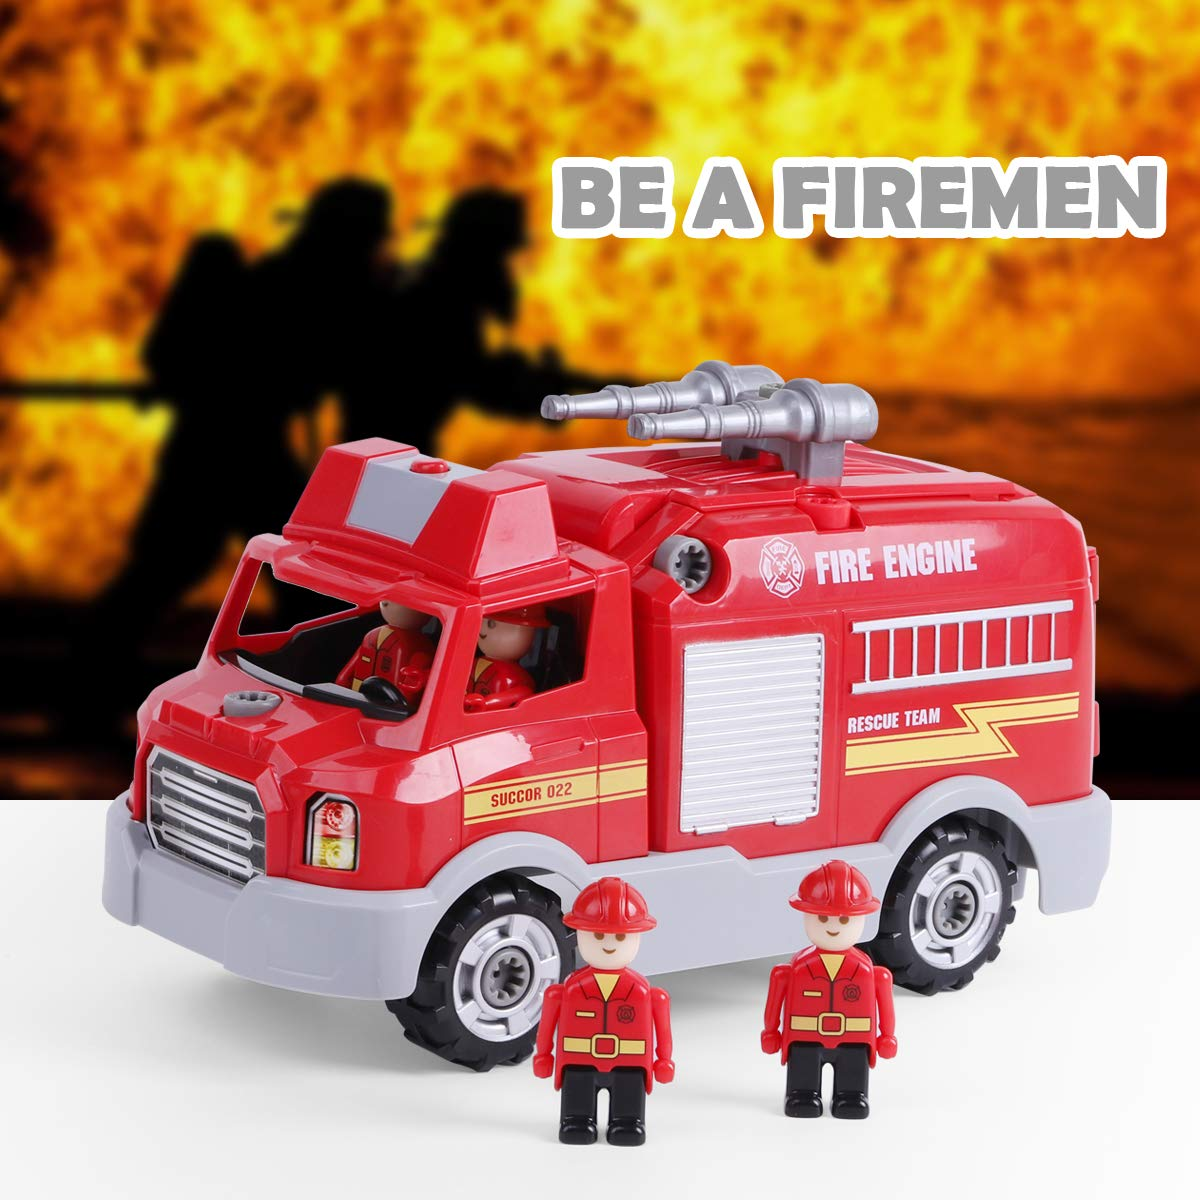 REMOKING STEM Learning Take Apart Toy for Boys & Girls, Build Your Own Car Toy Fire Truck Educational Playset with Tools and Power Drill, DIY Assembly Car with Realistic Sounds & Lights (3+ Ages) by REMOKING (Image #5)